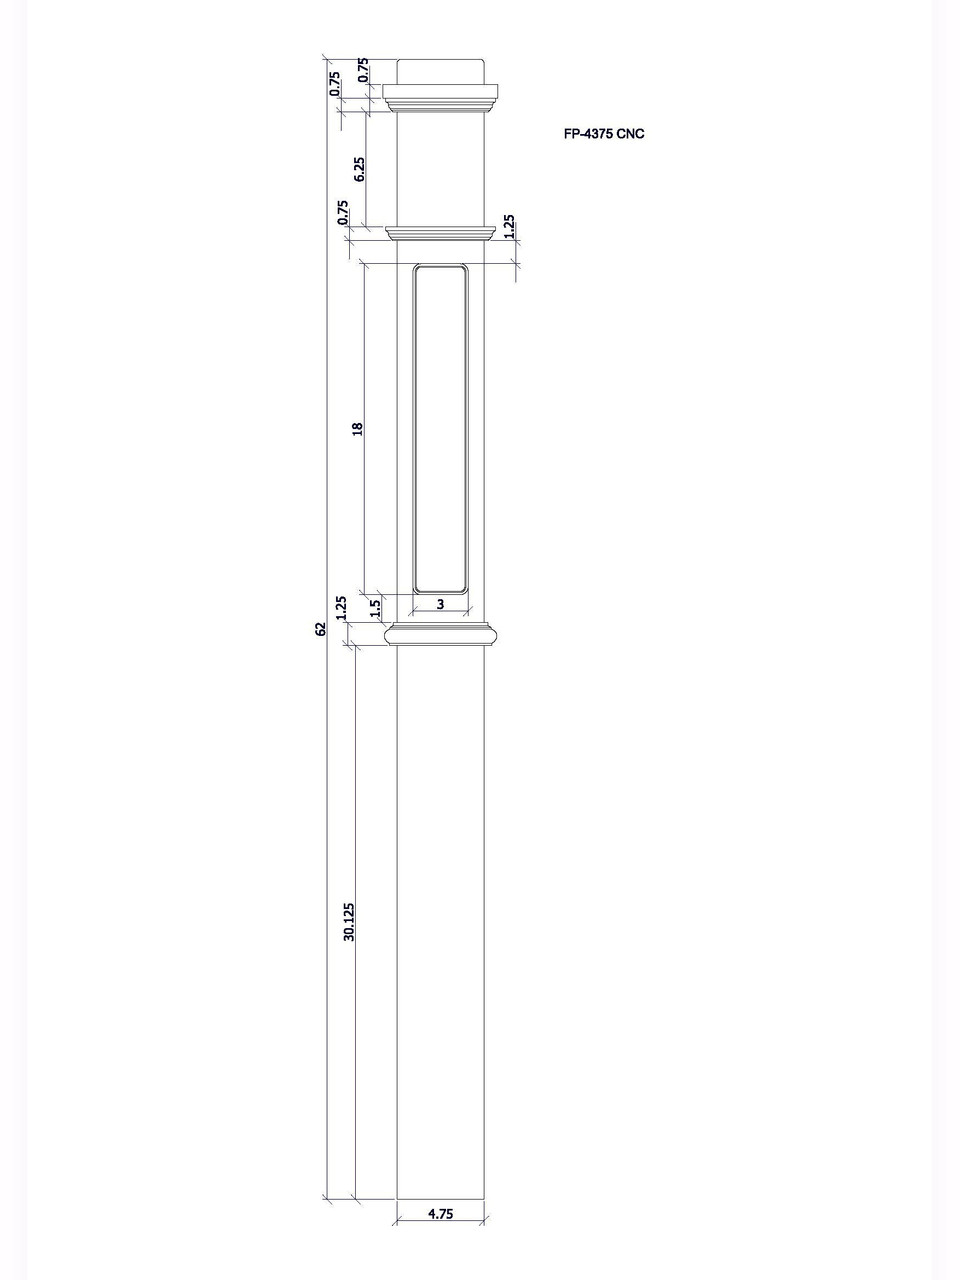 FP-4091 CNC Routed Box Newel Post, CADD Image